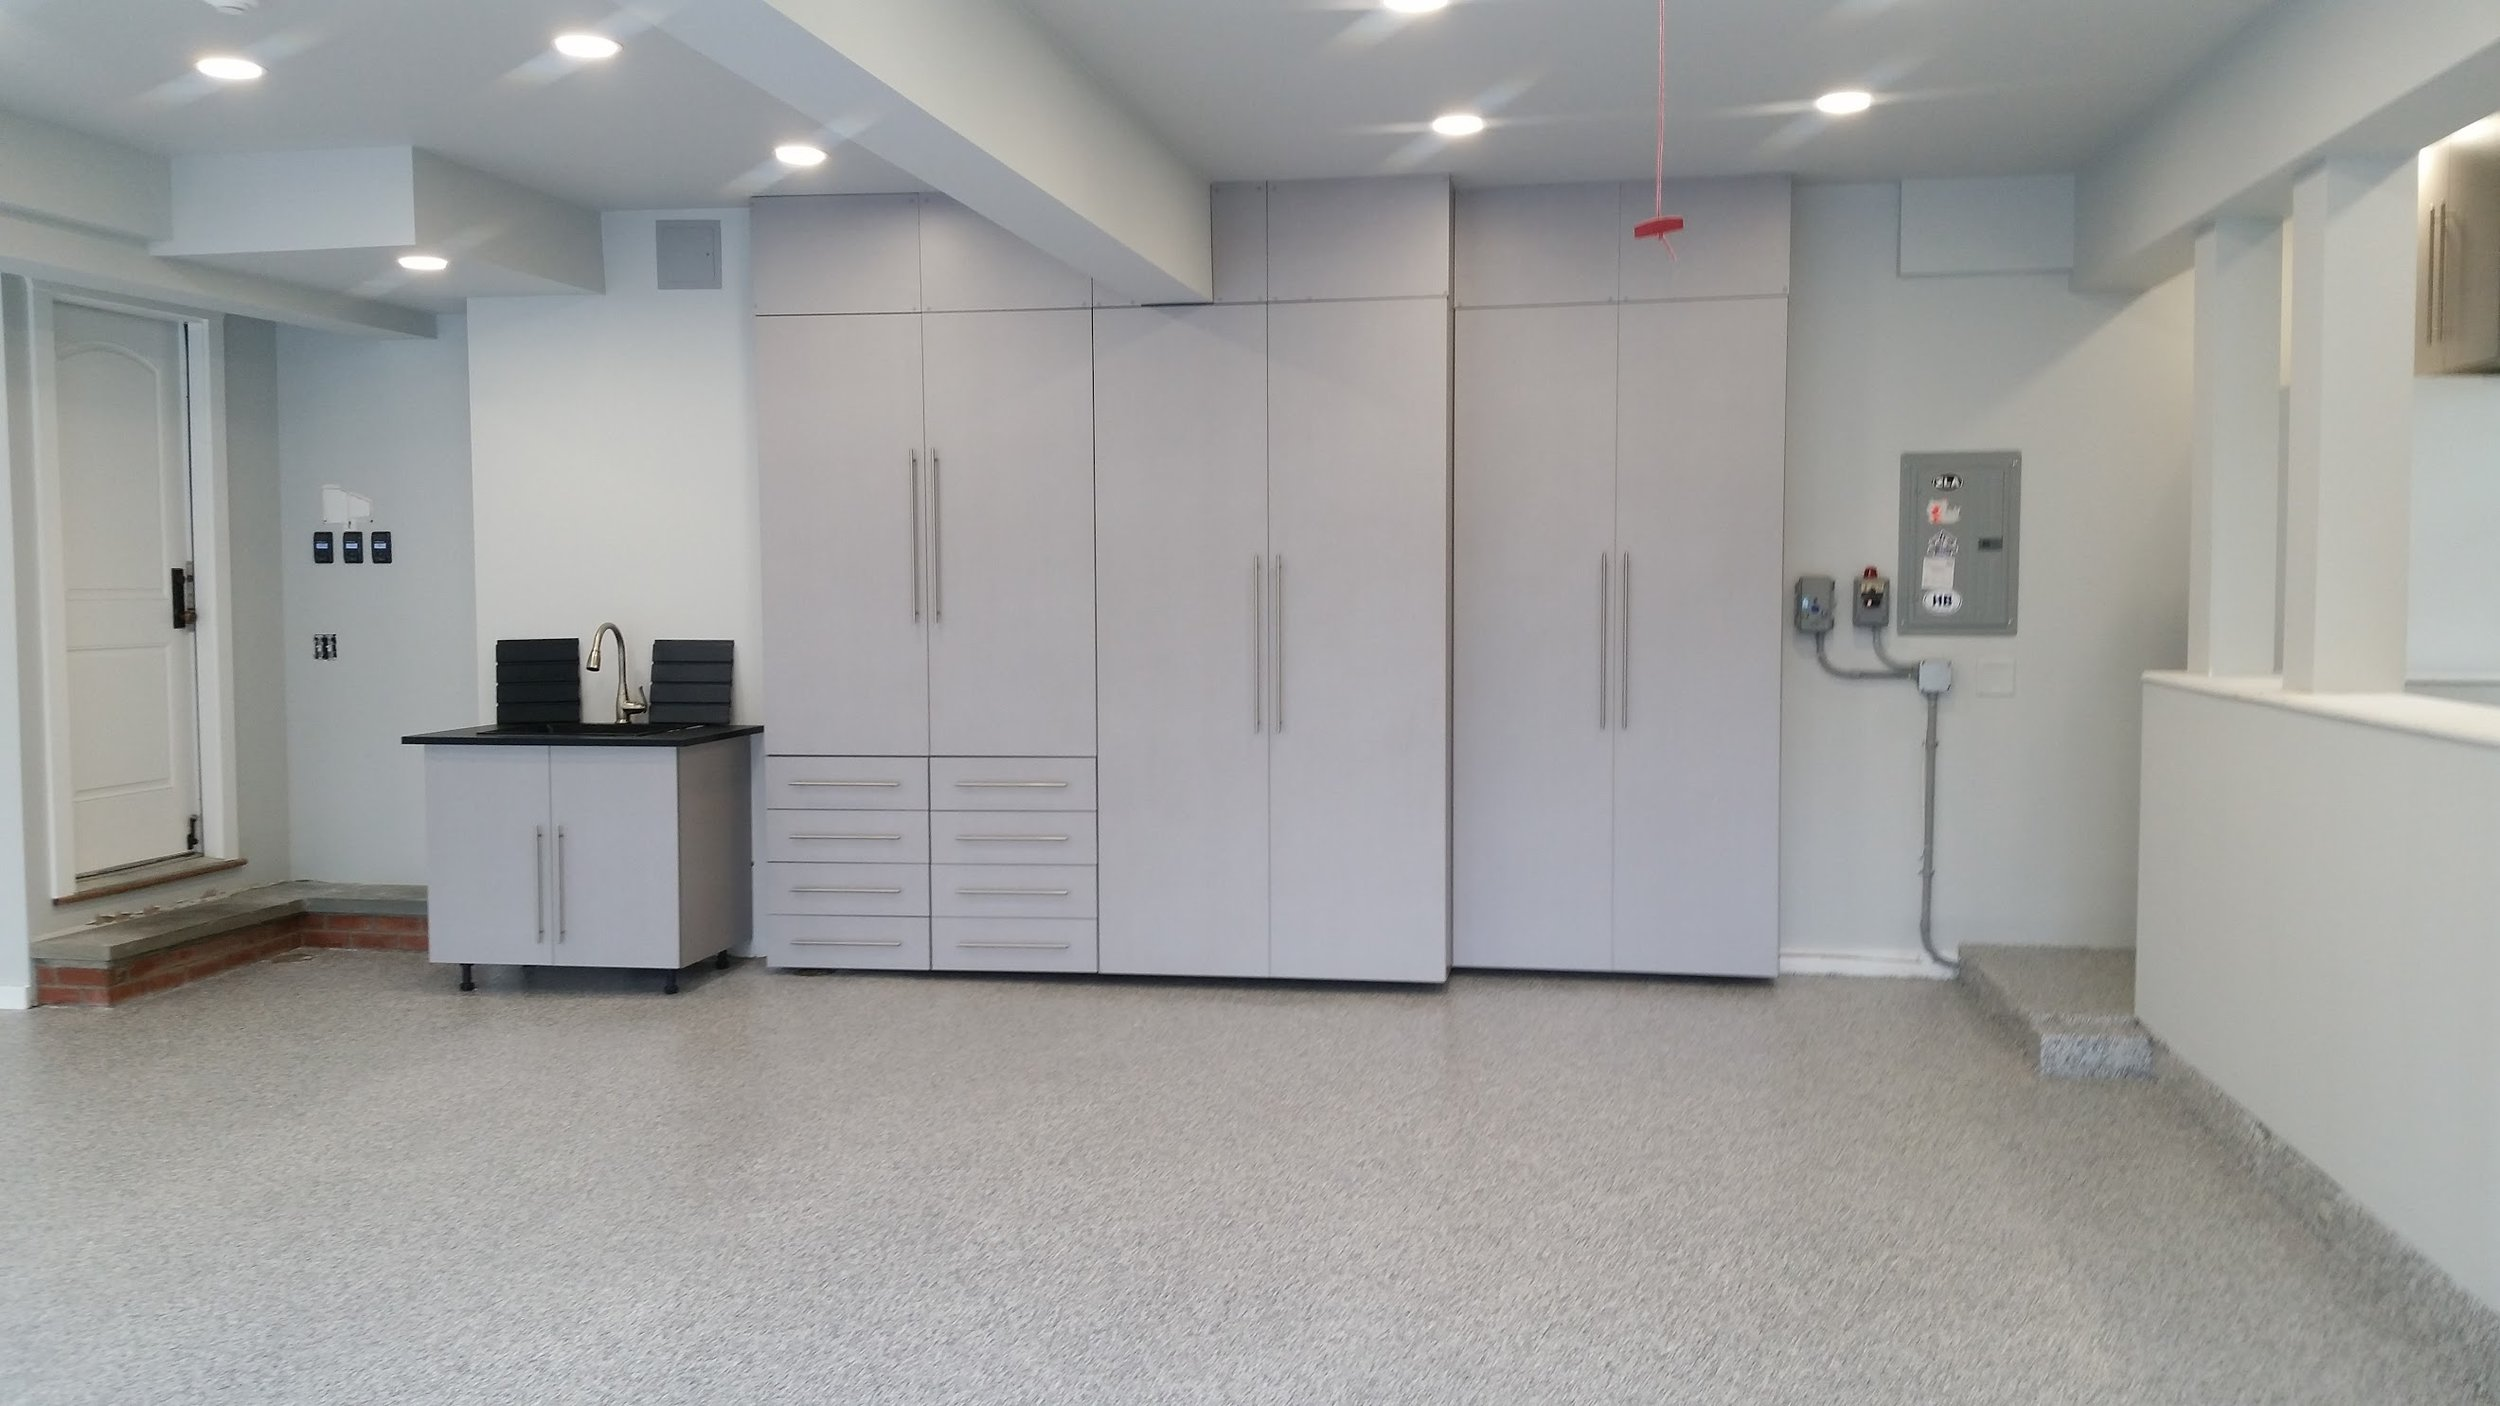 Commercial industrial floor coating with storage cabinets example